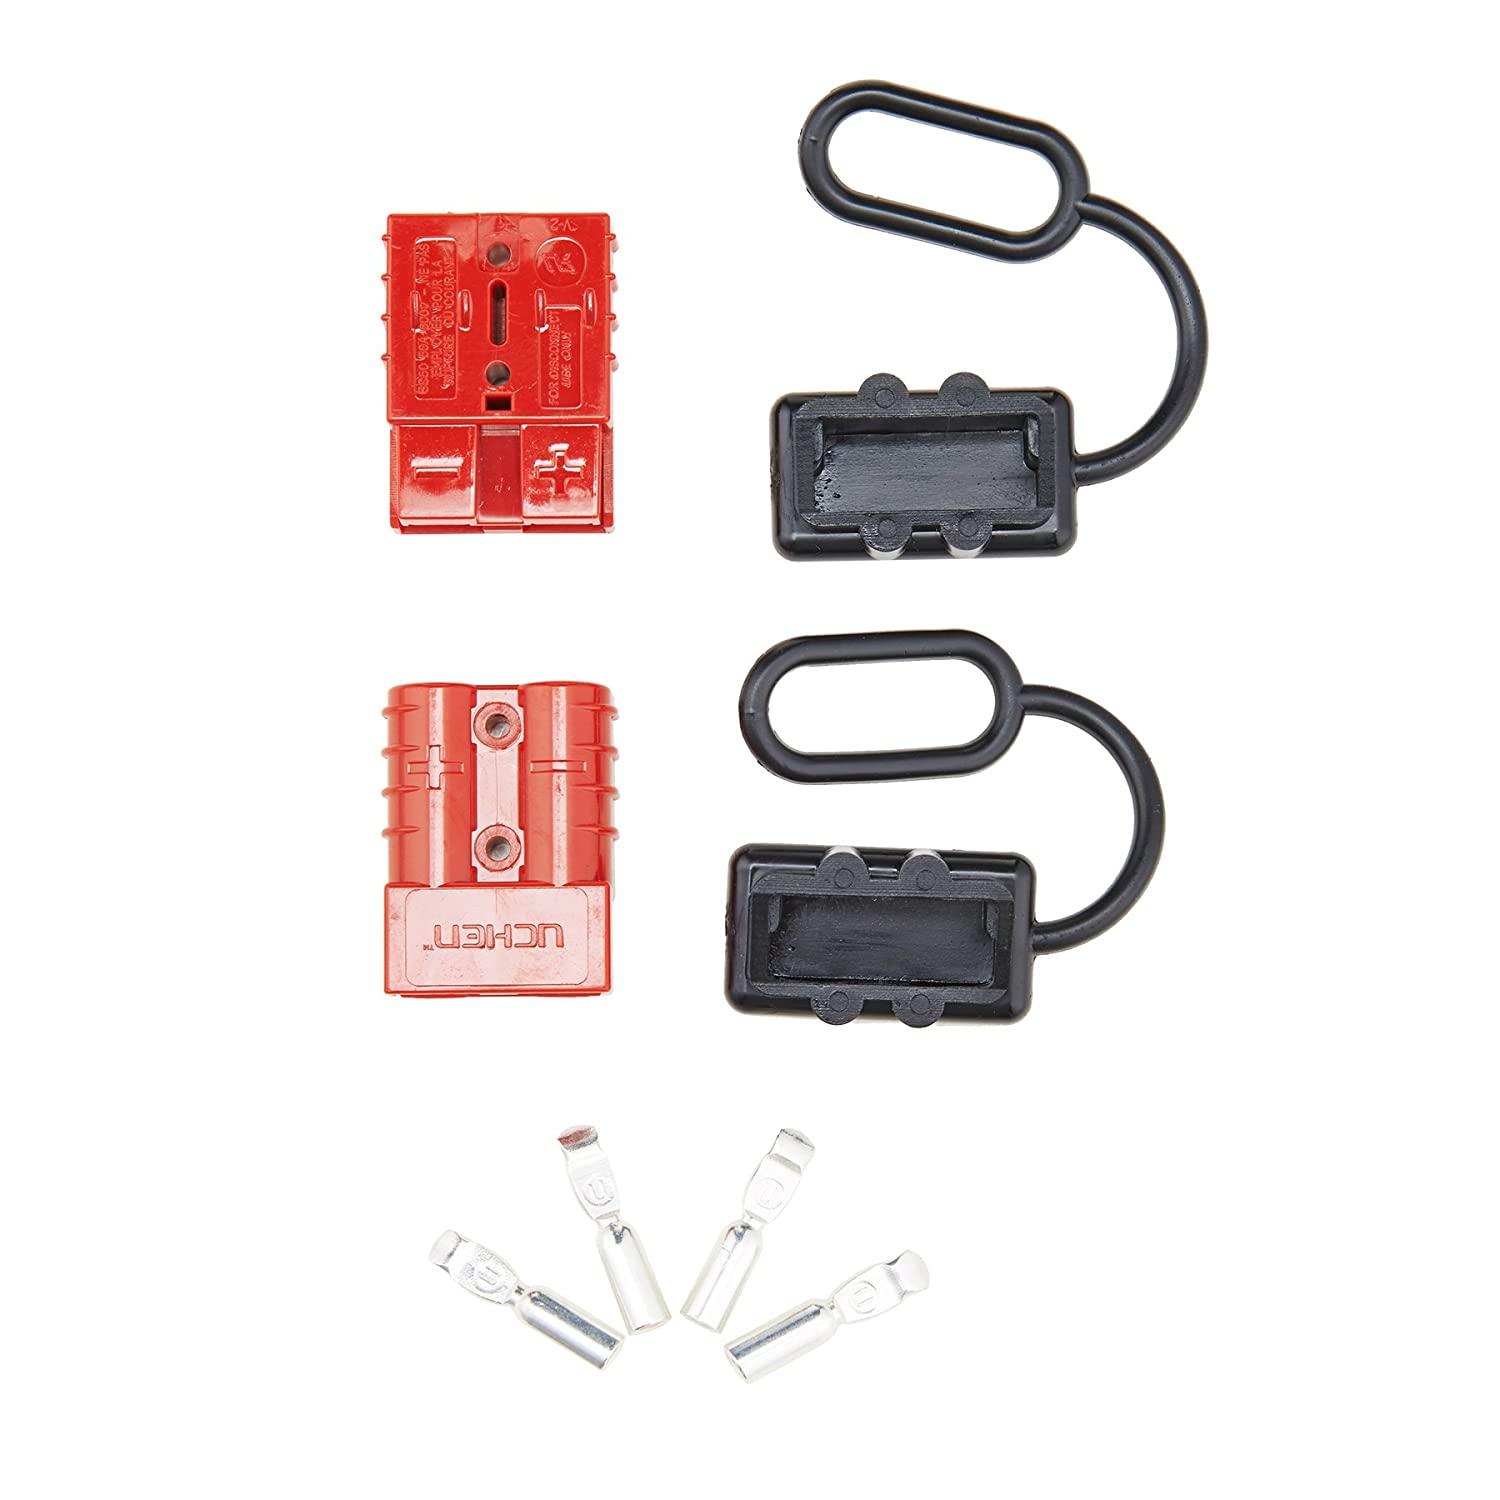 OrionMotorTech 4 Pcs 6-8 Gauge Battery Quick Connect//Disconnect Wire Harness Plug Kit for Recovery Winch or Trailer Orion Motor Tech 4332987149 50A 4 Pcs 12-36V DC